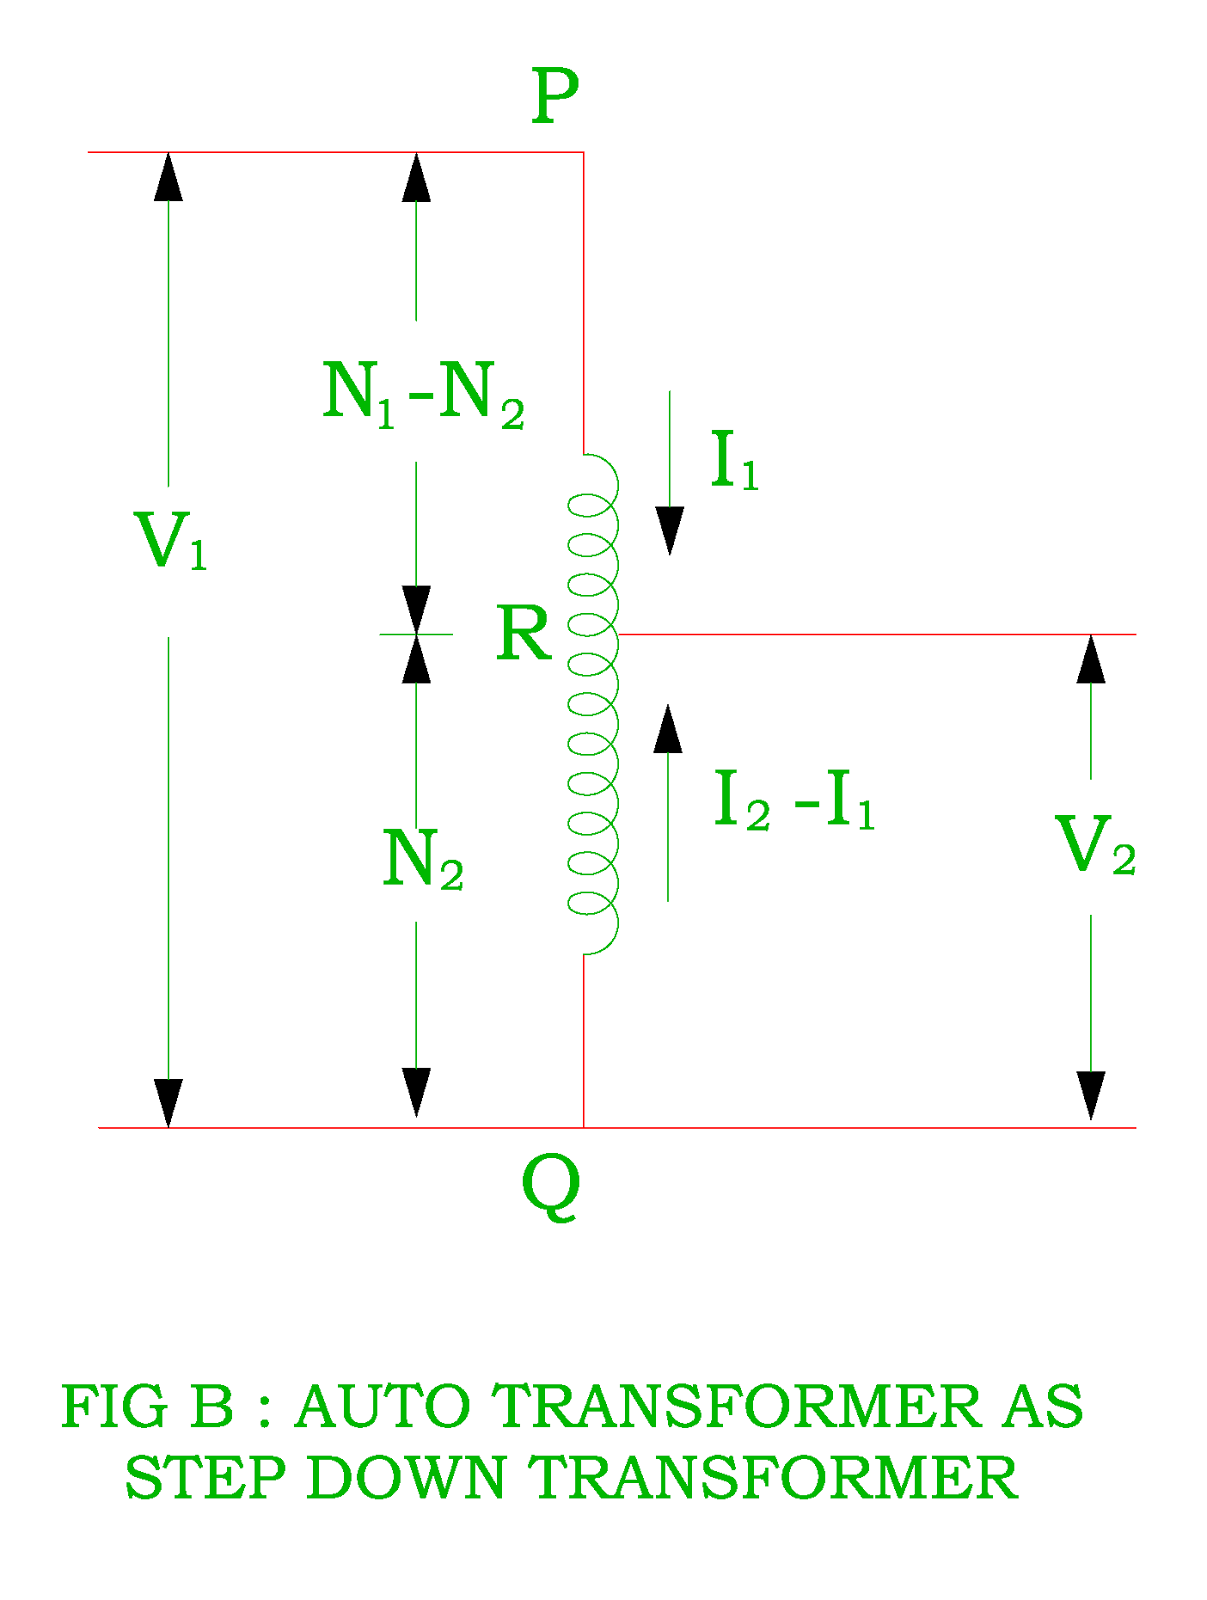 Auto Transformer Korndrfer Autotransformer Starter Wikipedia The Free Encyclopedia Working Of Saving In Copper Material 1207x1600